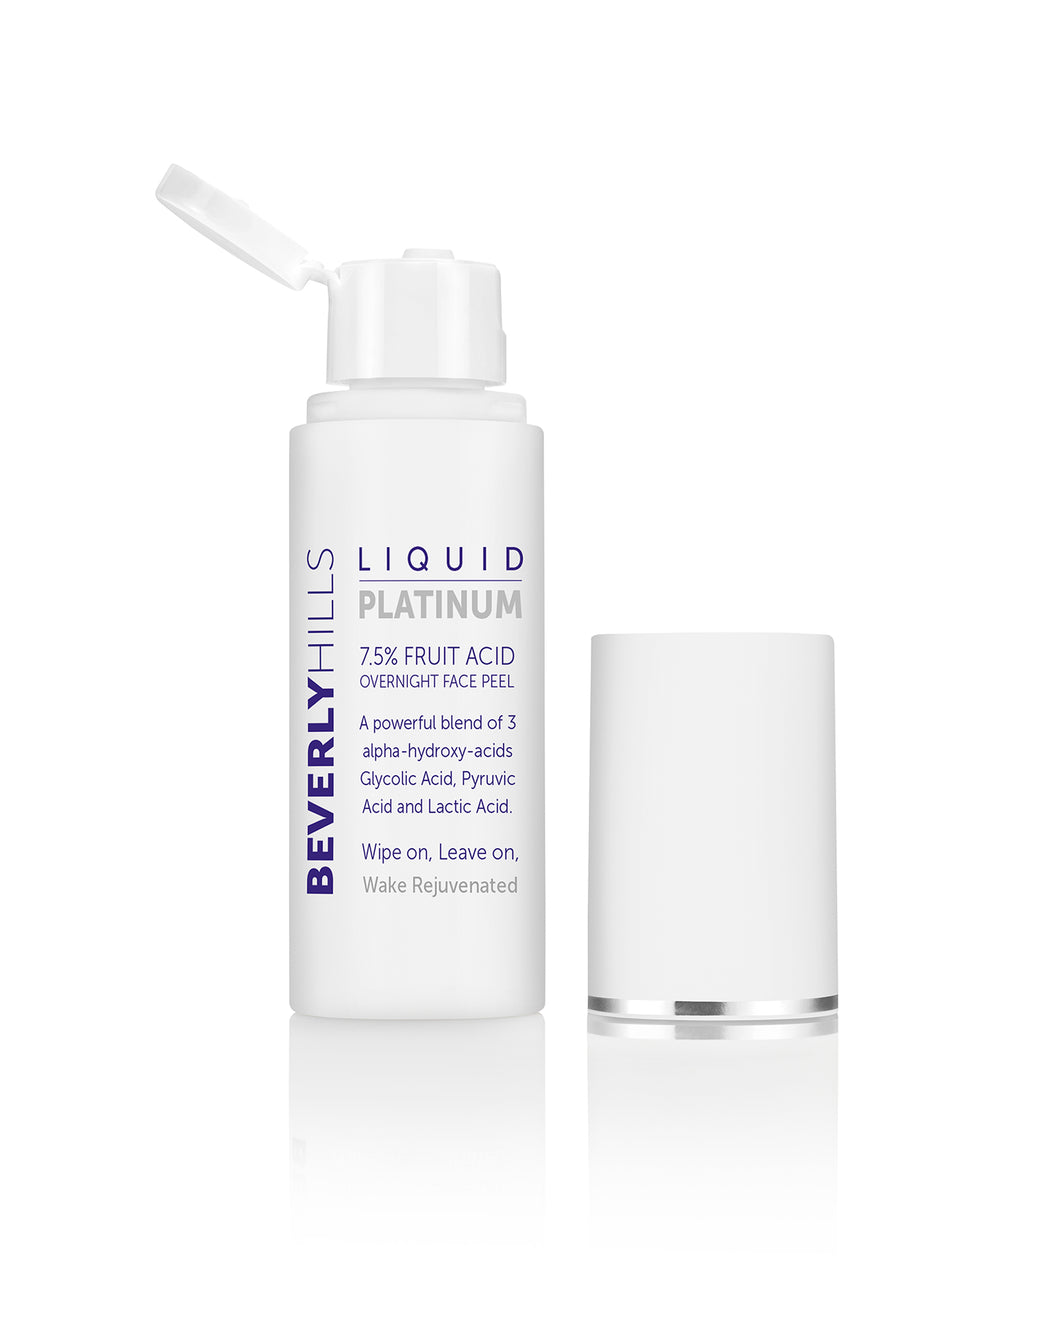 Liquid Platinum 7.5% Fruit Acid Facial Peel & Resurfacing Treatment. 50ml